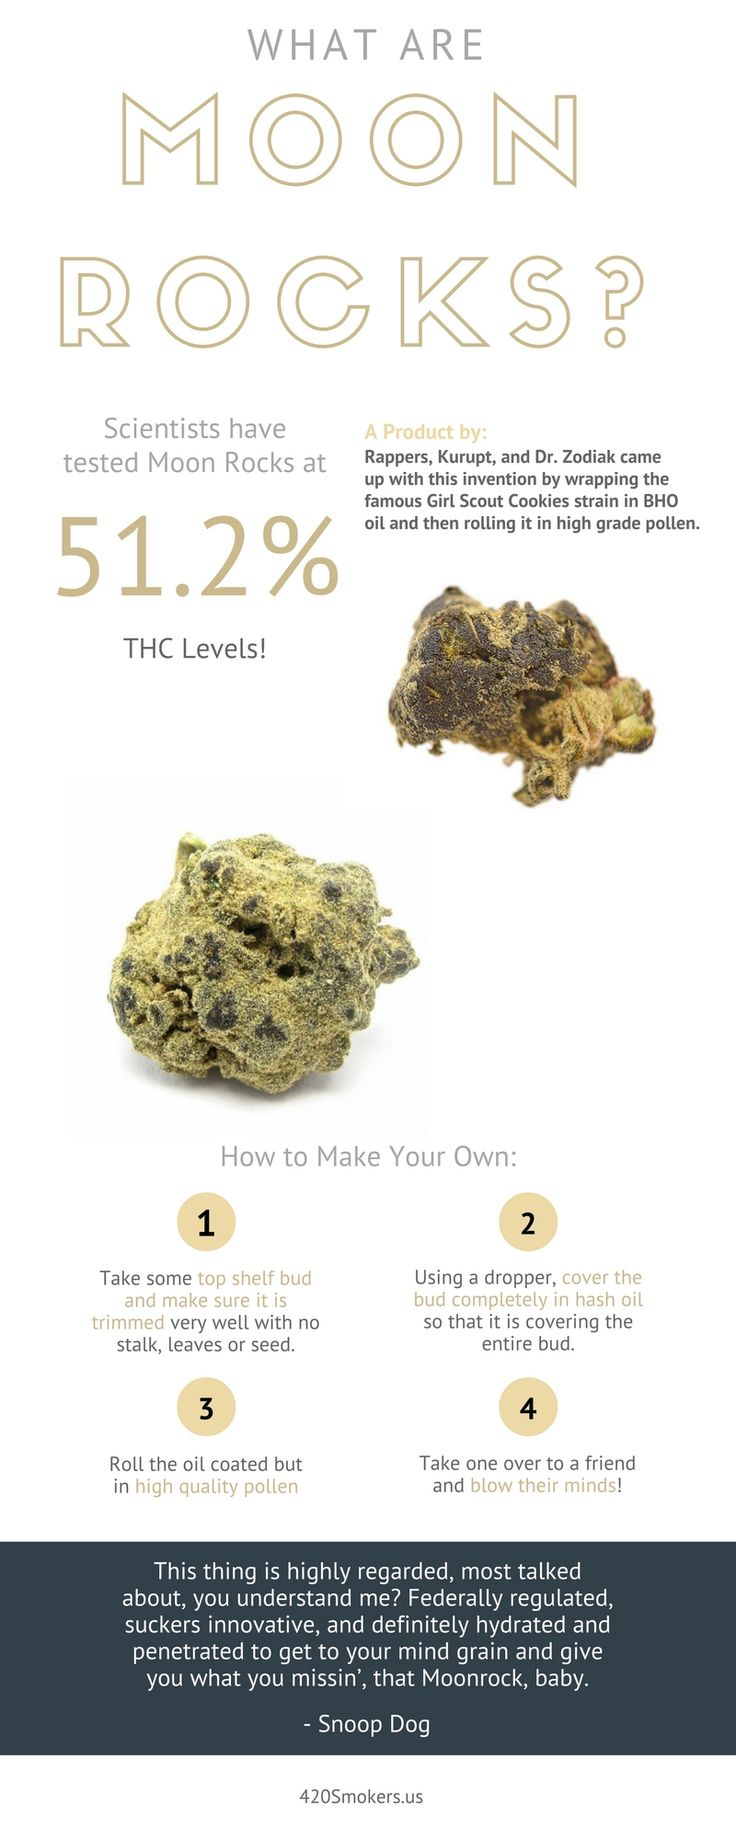 #moonrocks explained. Cannabis at 51.2%!! Can you believe it?